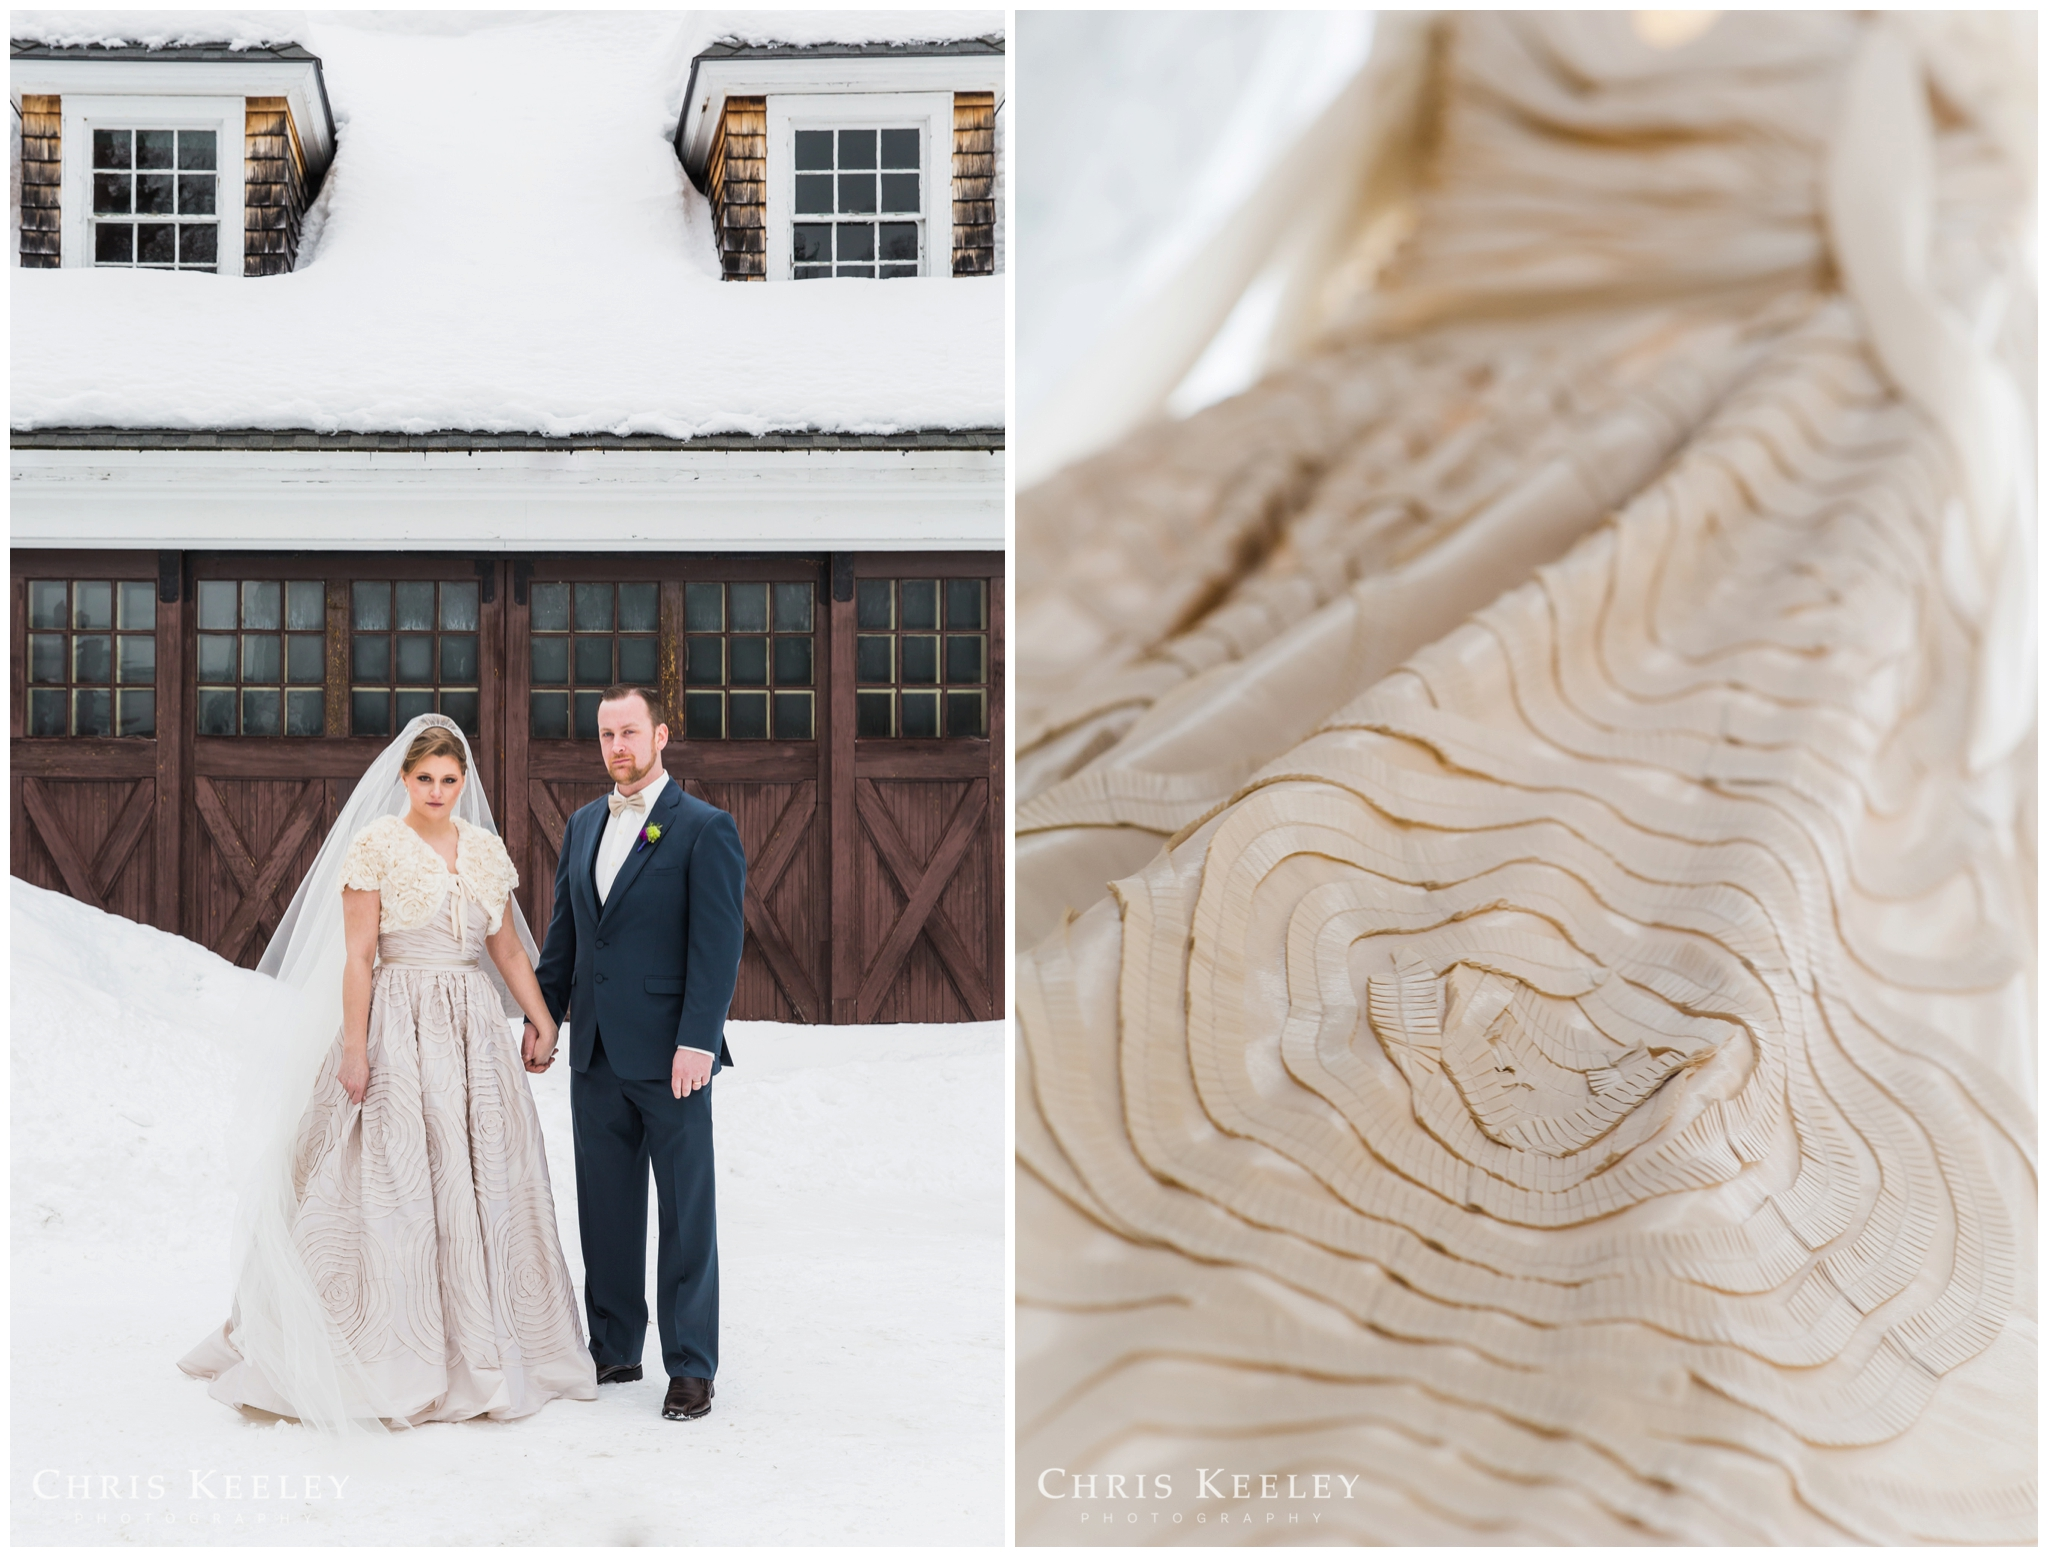 Lauren chose a modern, yet classic ball gown from Wtoo by Watters. The taffeta dress featured a ruched strapless sweetheart bodice, full skirt with hand pleated floral details, and a thin satin ribbon belt.